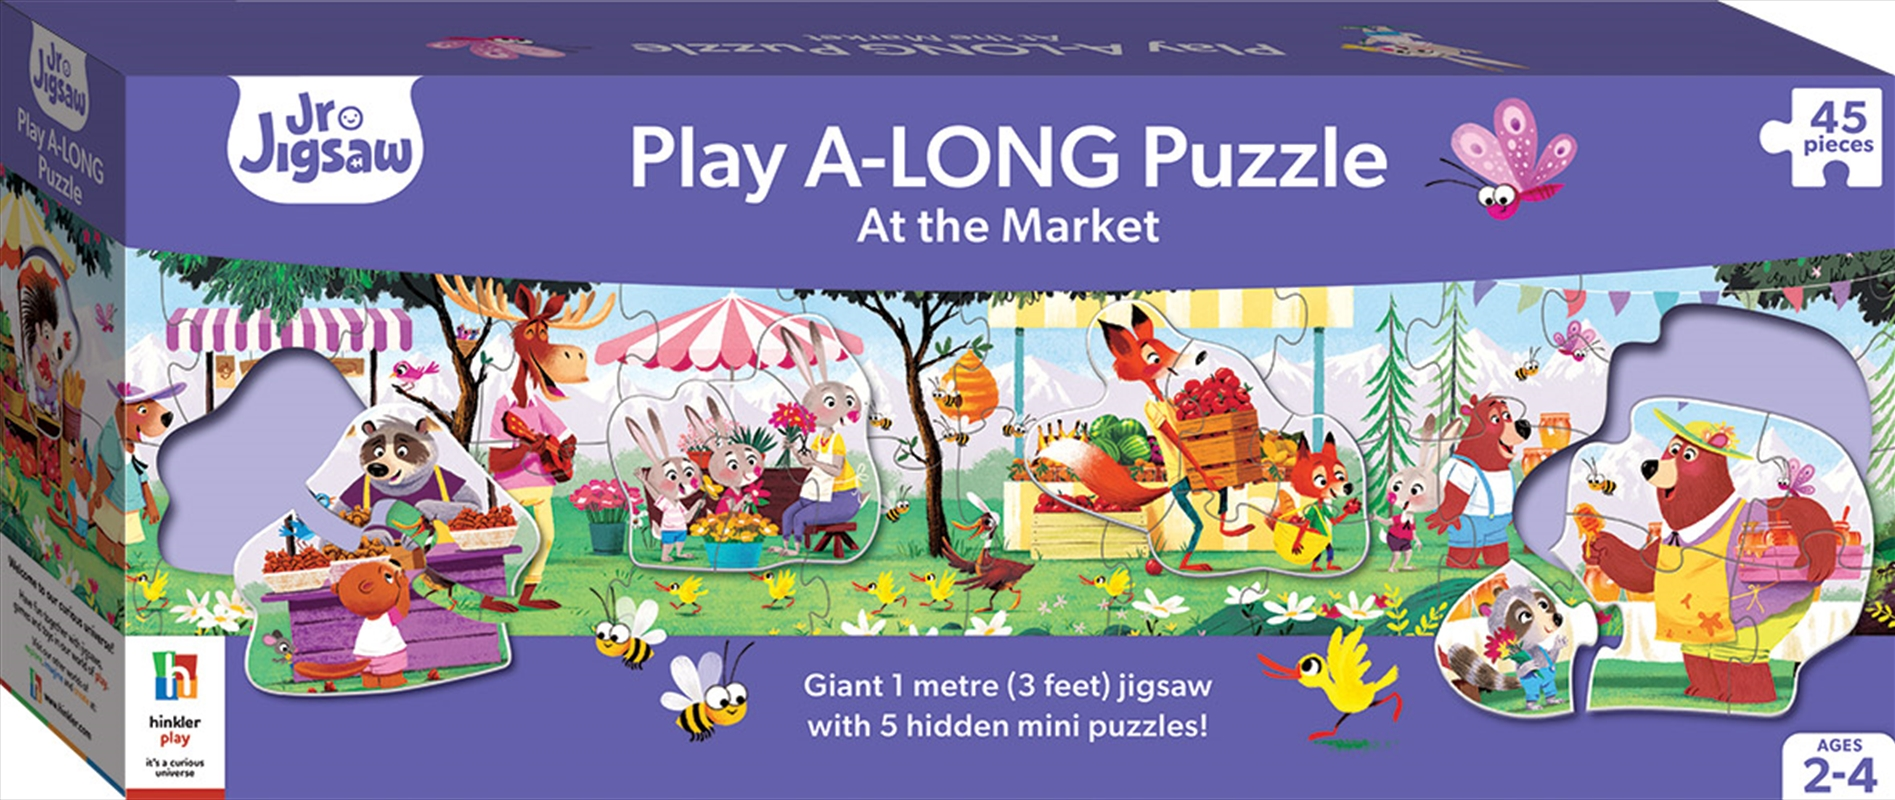 Play A-Long Jigsaw Puzzle - At the Market | Merchandise